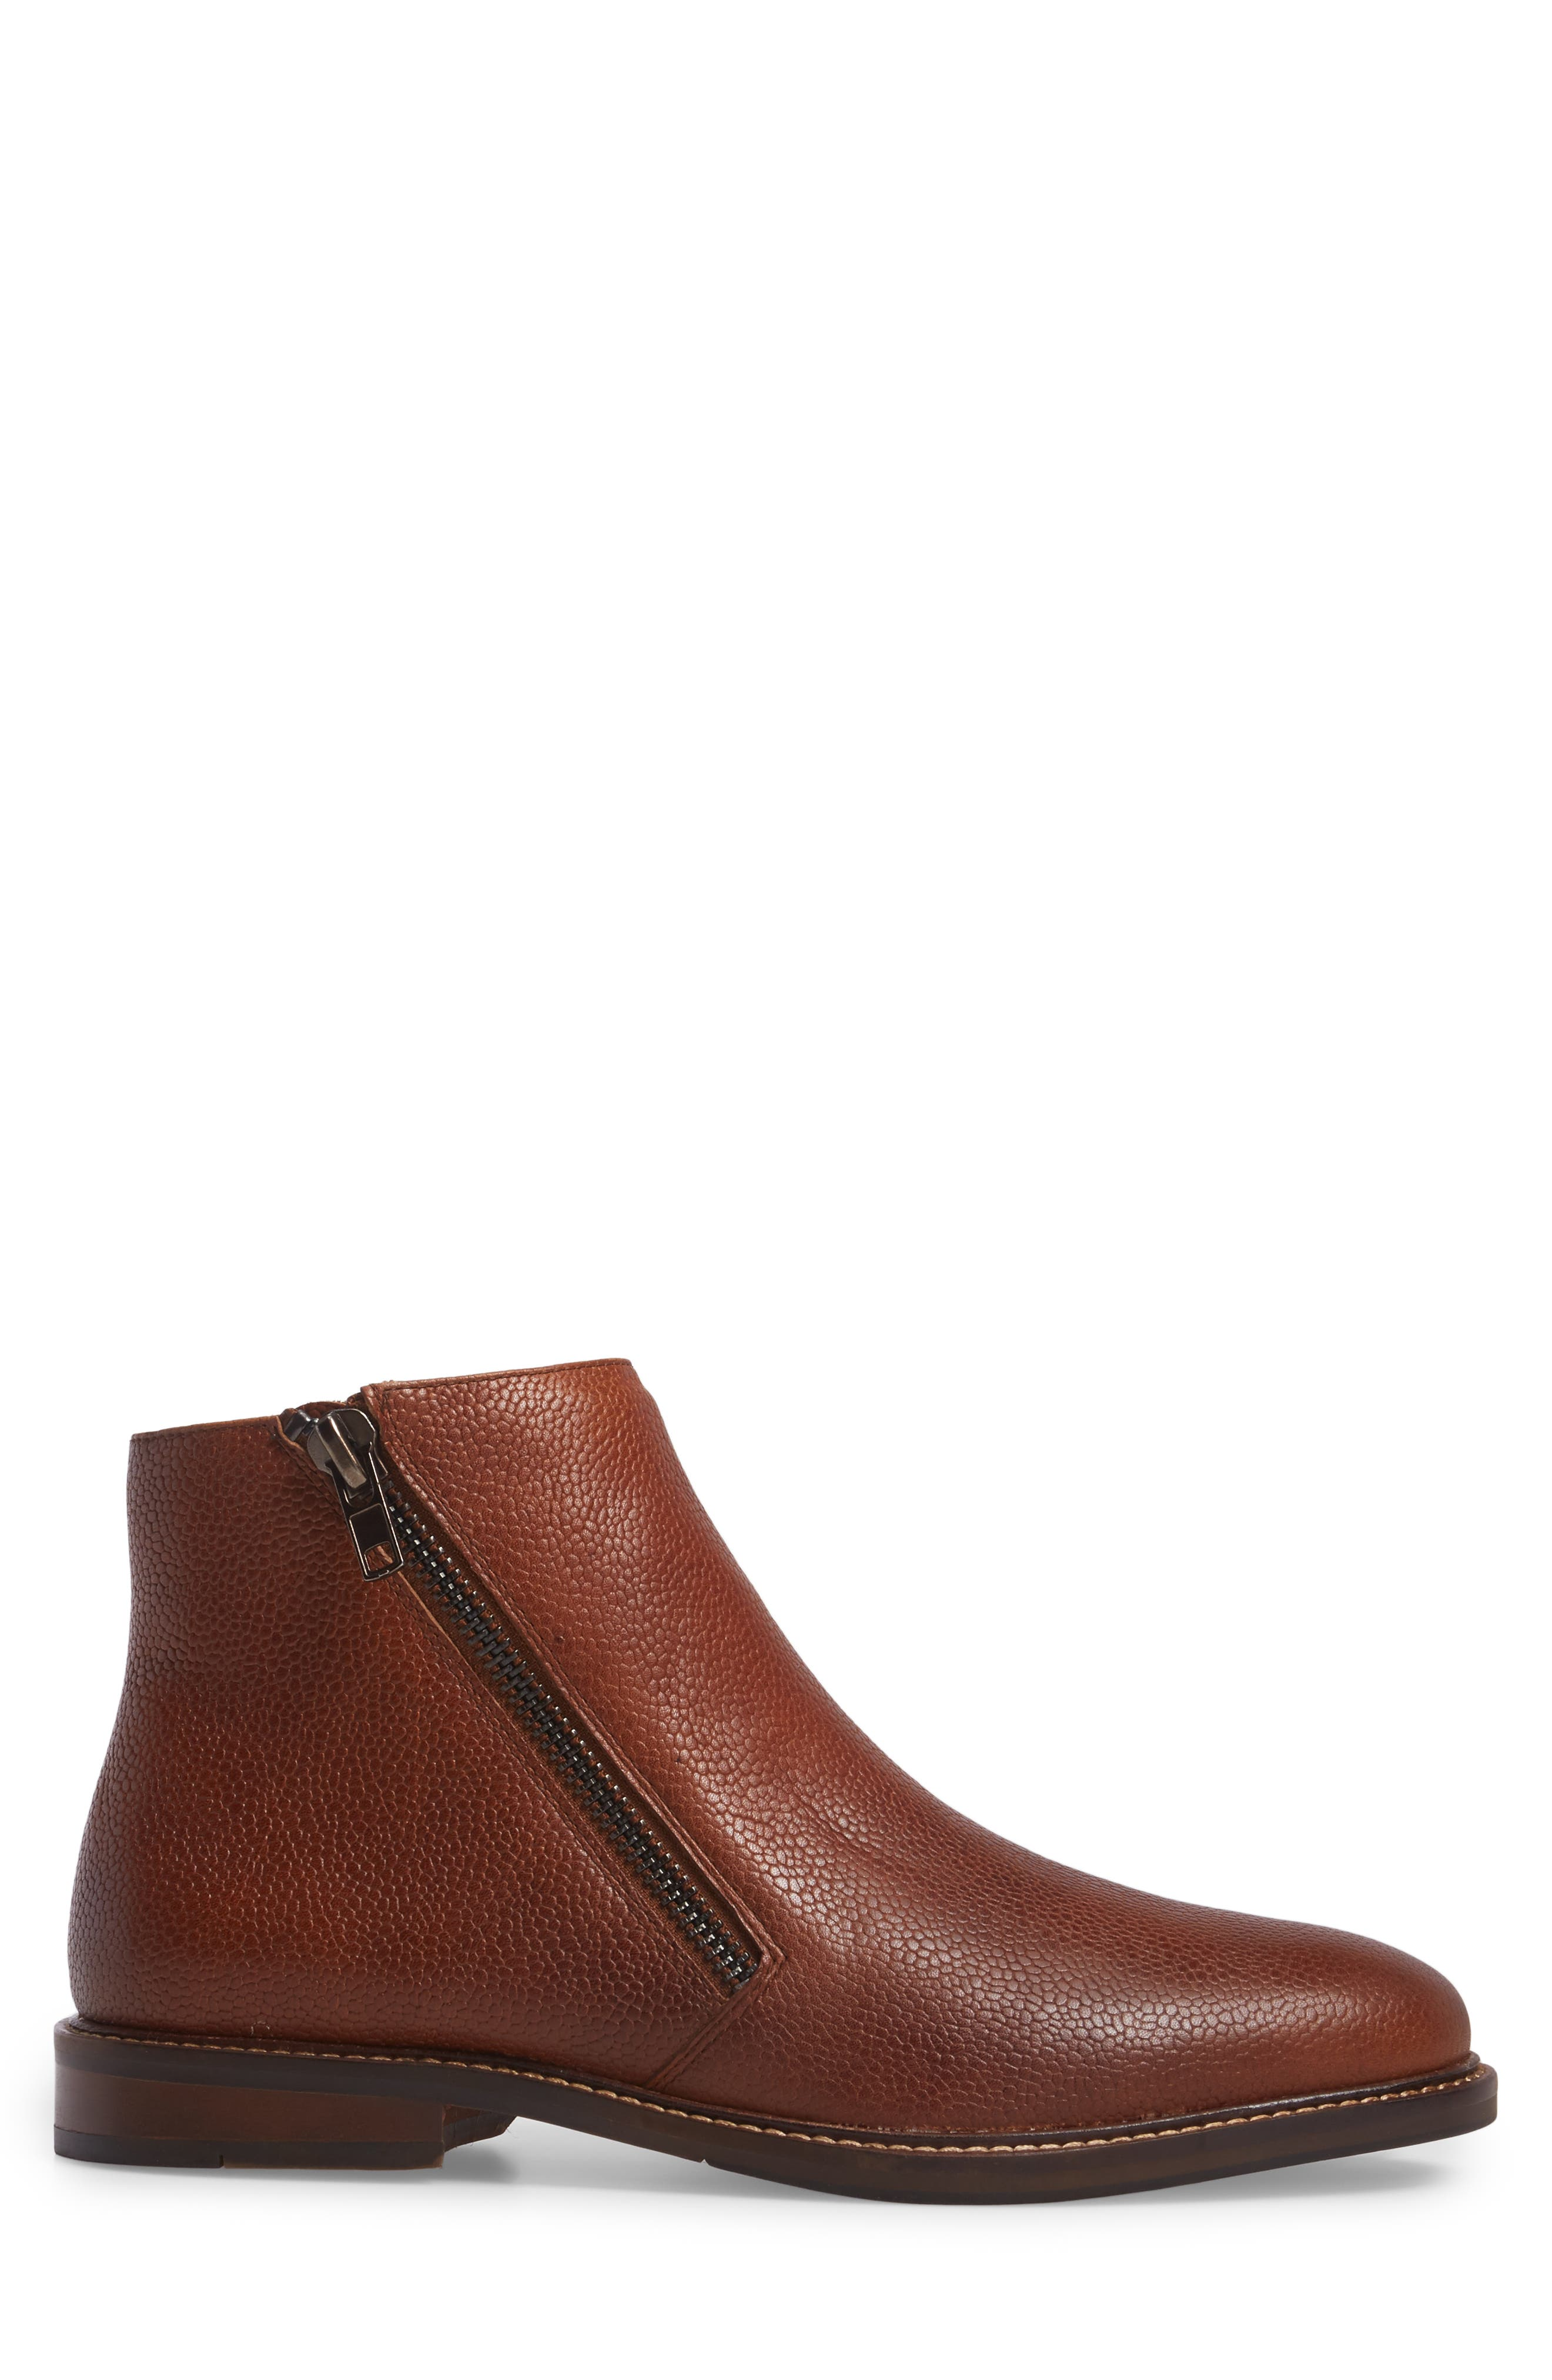 Kenneth Cole Reaction Zip Boot,                             Alternate thumbnail 3, color,                             201